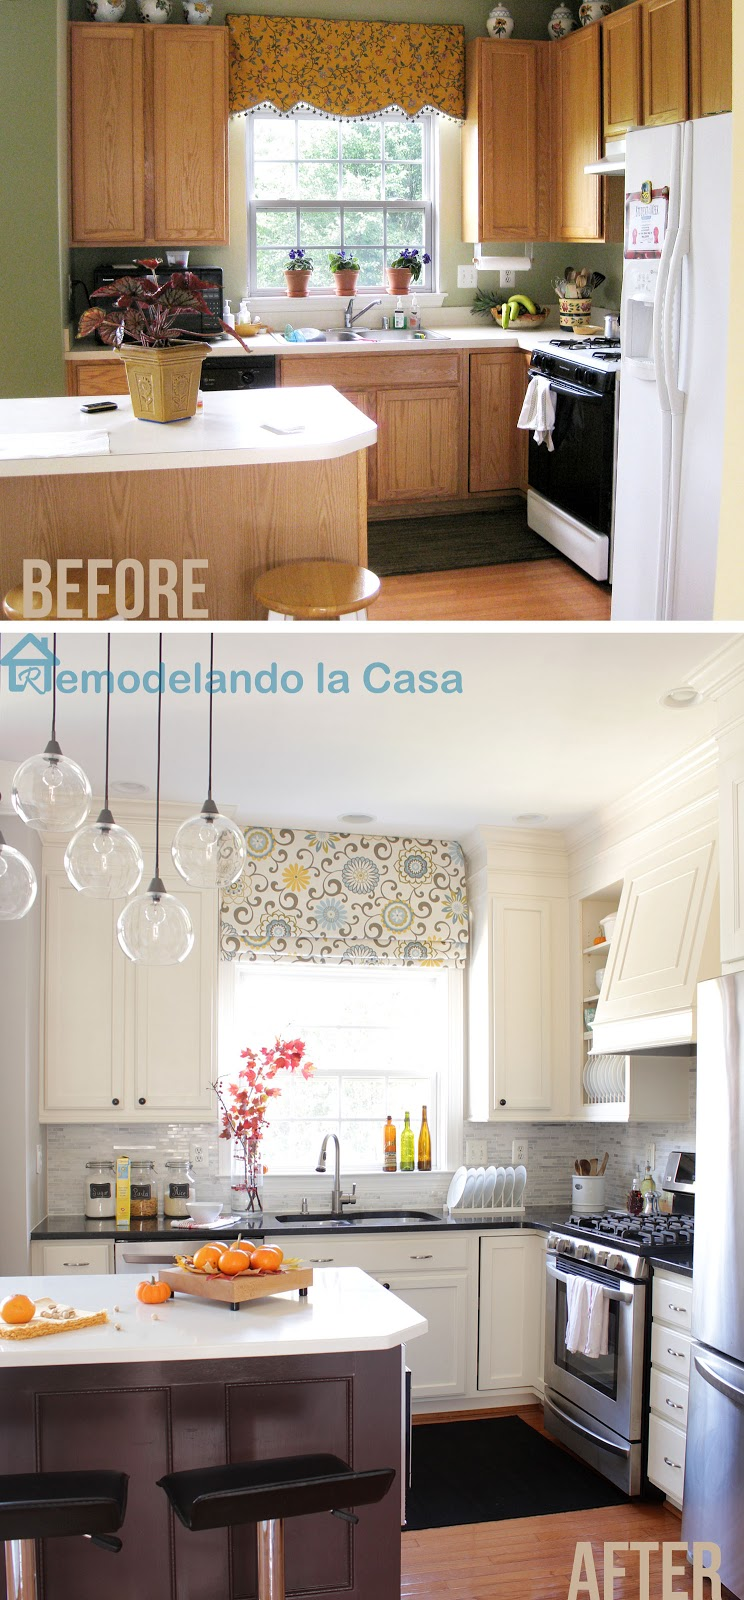 kitchen makeover remodelando la casa. Black Bedroom Furniture Sets. Home Design Ideas